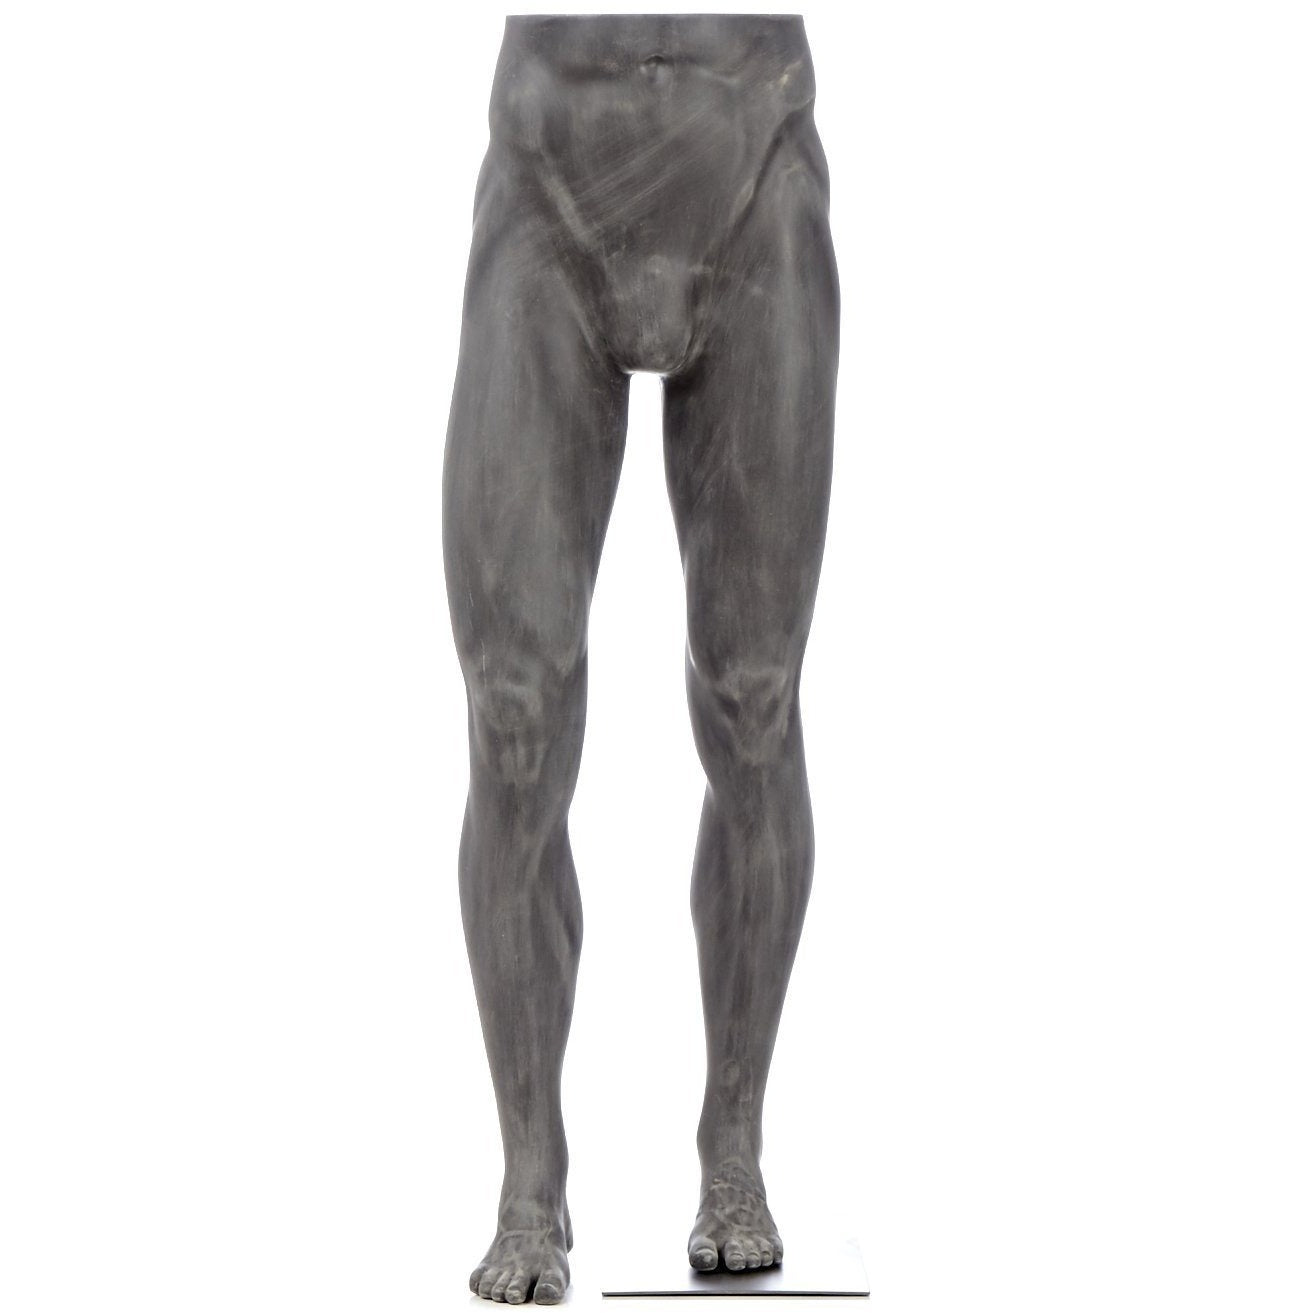 Athletic Male Pant Form Mannequin by Fusion Specialties Front